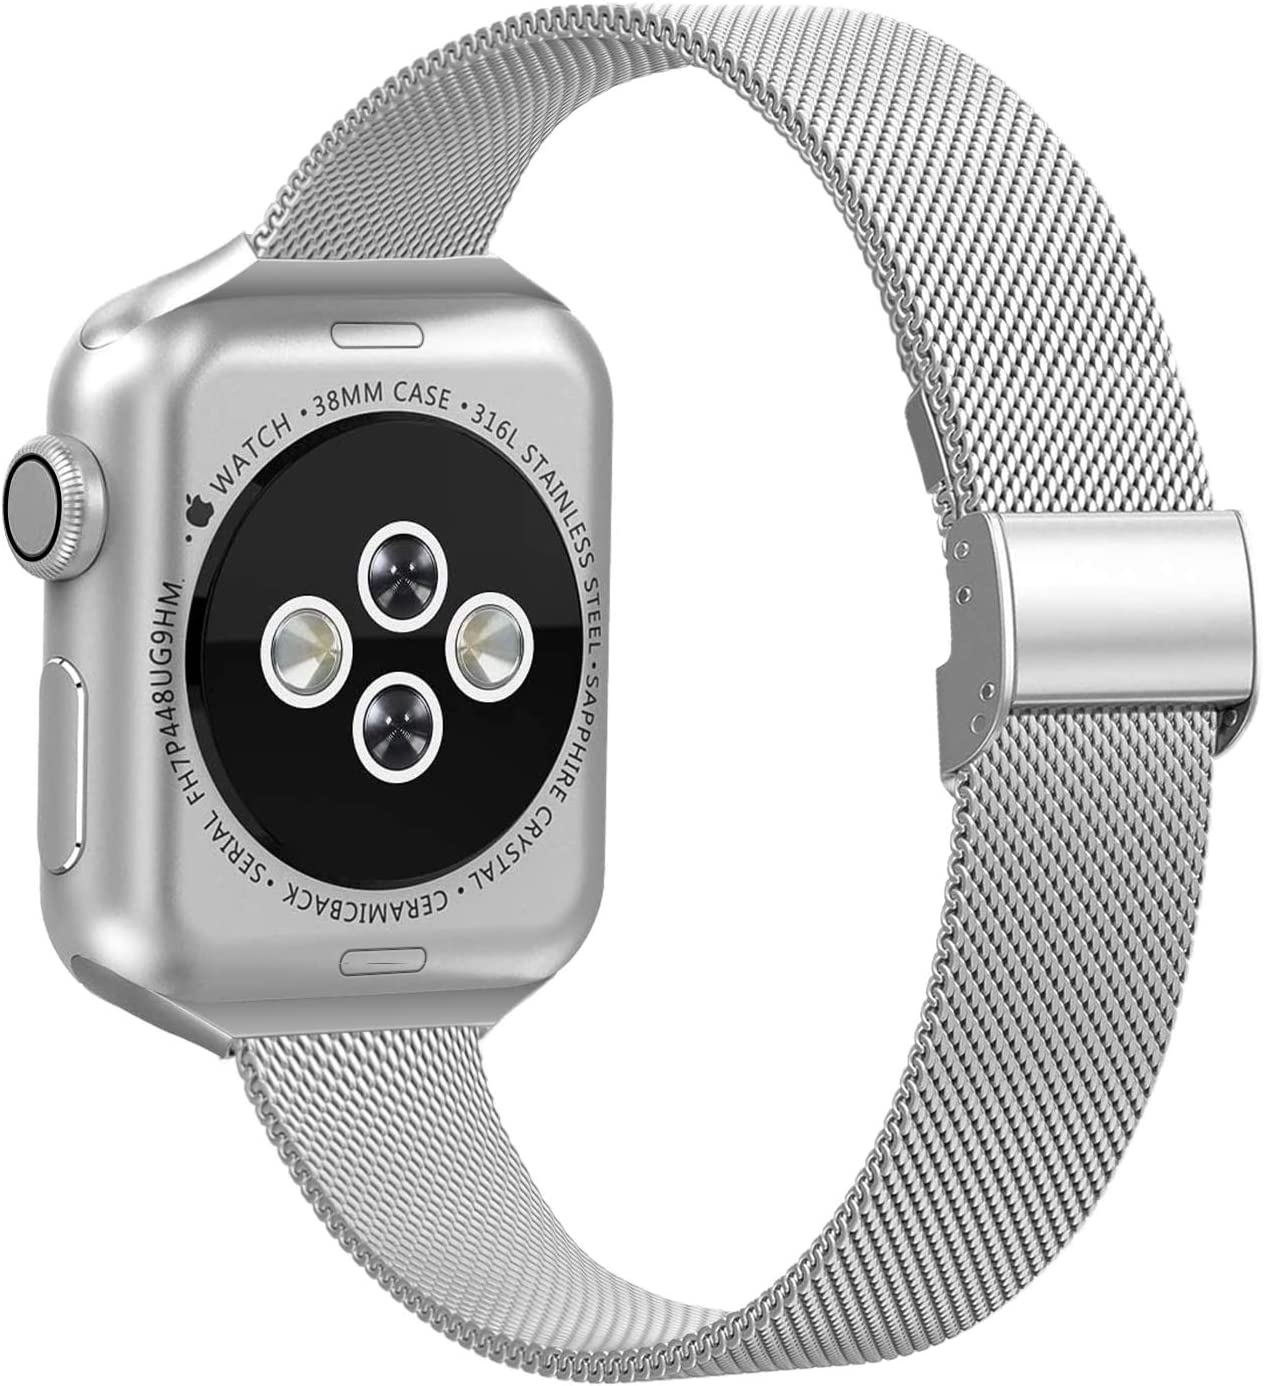 QRose Bands Compatible with Apple Watch 38mm 40mm 42mm 44mm, Slim Thin Narrow Replacement Metal Mesh Sport Accessory Strap Wristband Compatible for iWatch Series 1/2/3/4/5